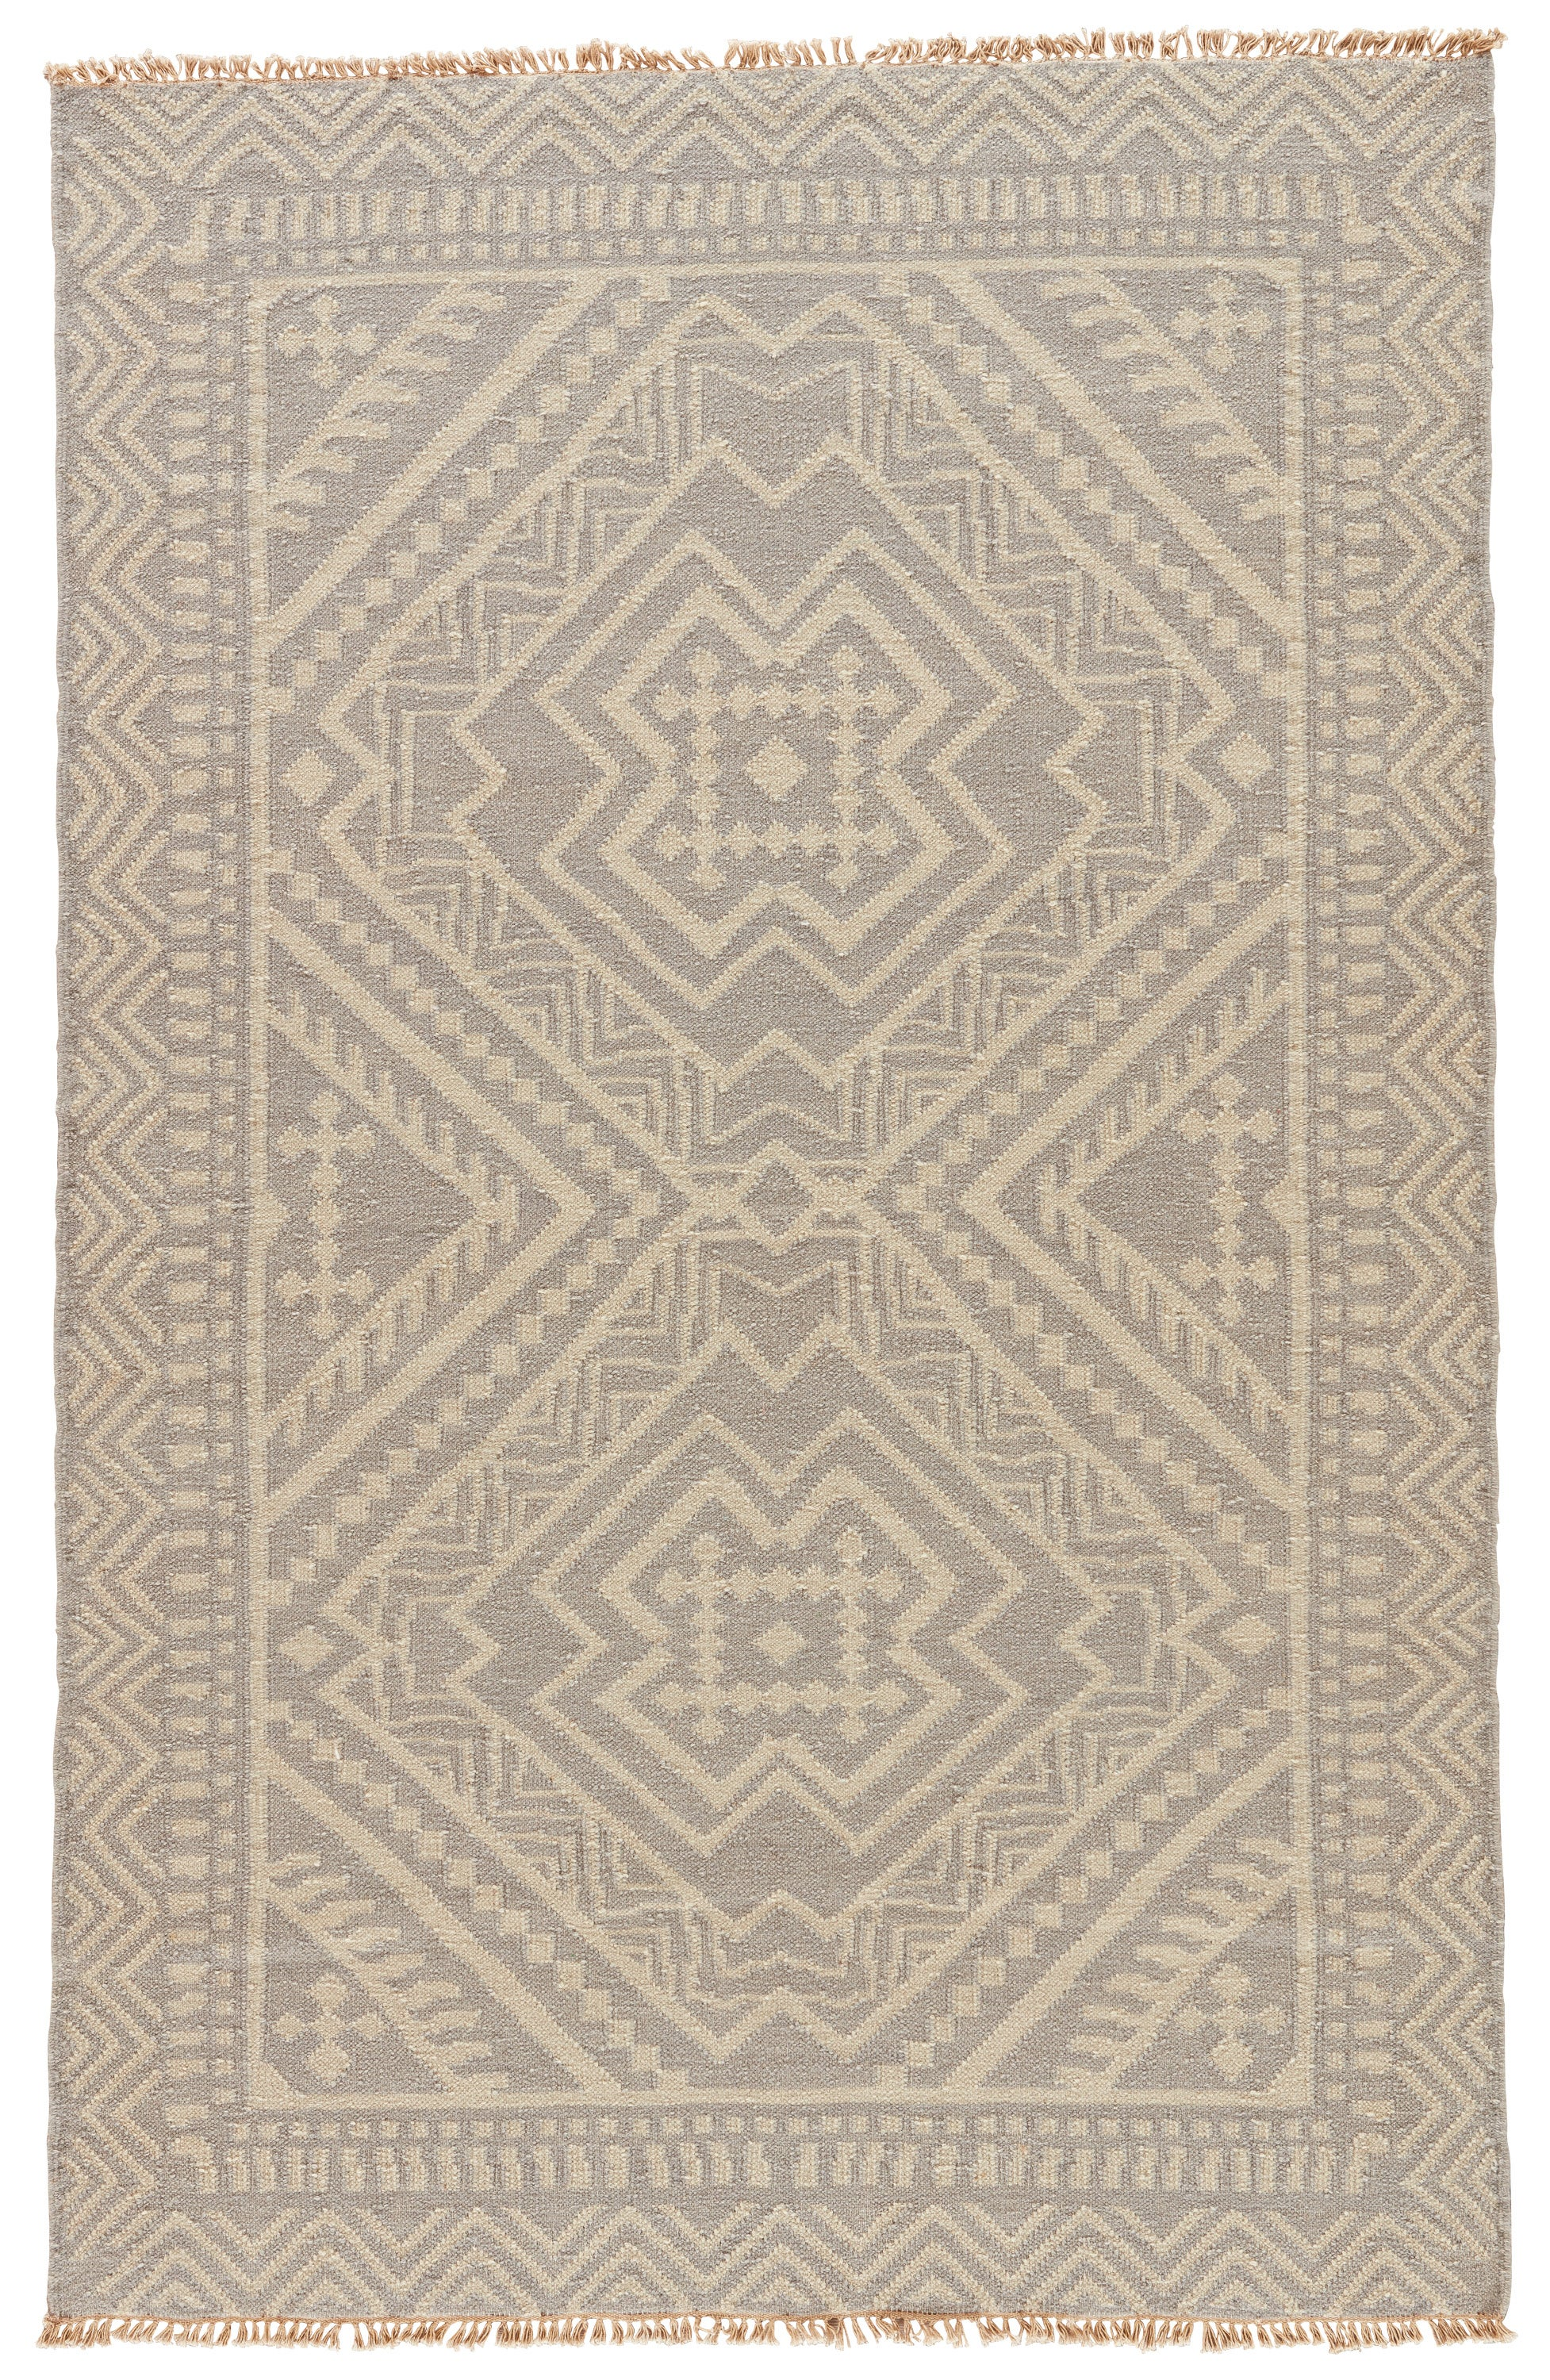 Rectangle Gray Geometric Dhurrie Wool Contemporary recommended for Bedroom, Bathroom, Dining Room, Office, Hallway, Living Room